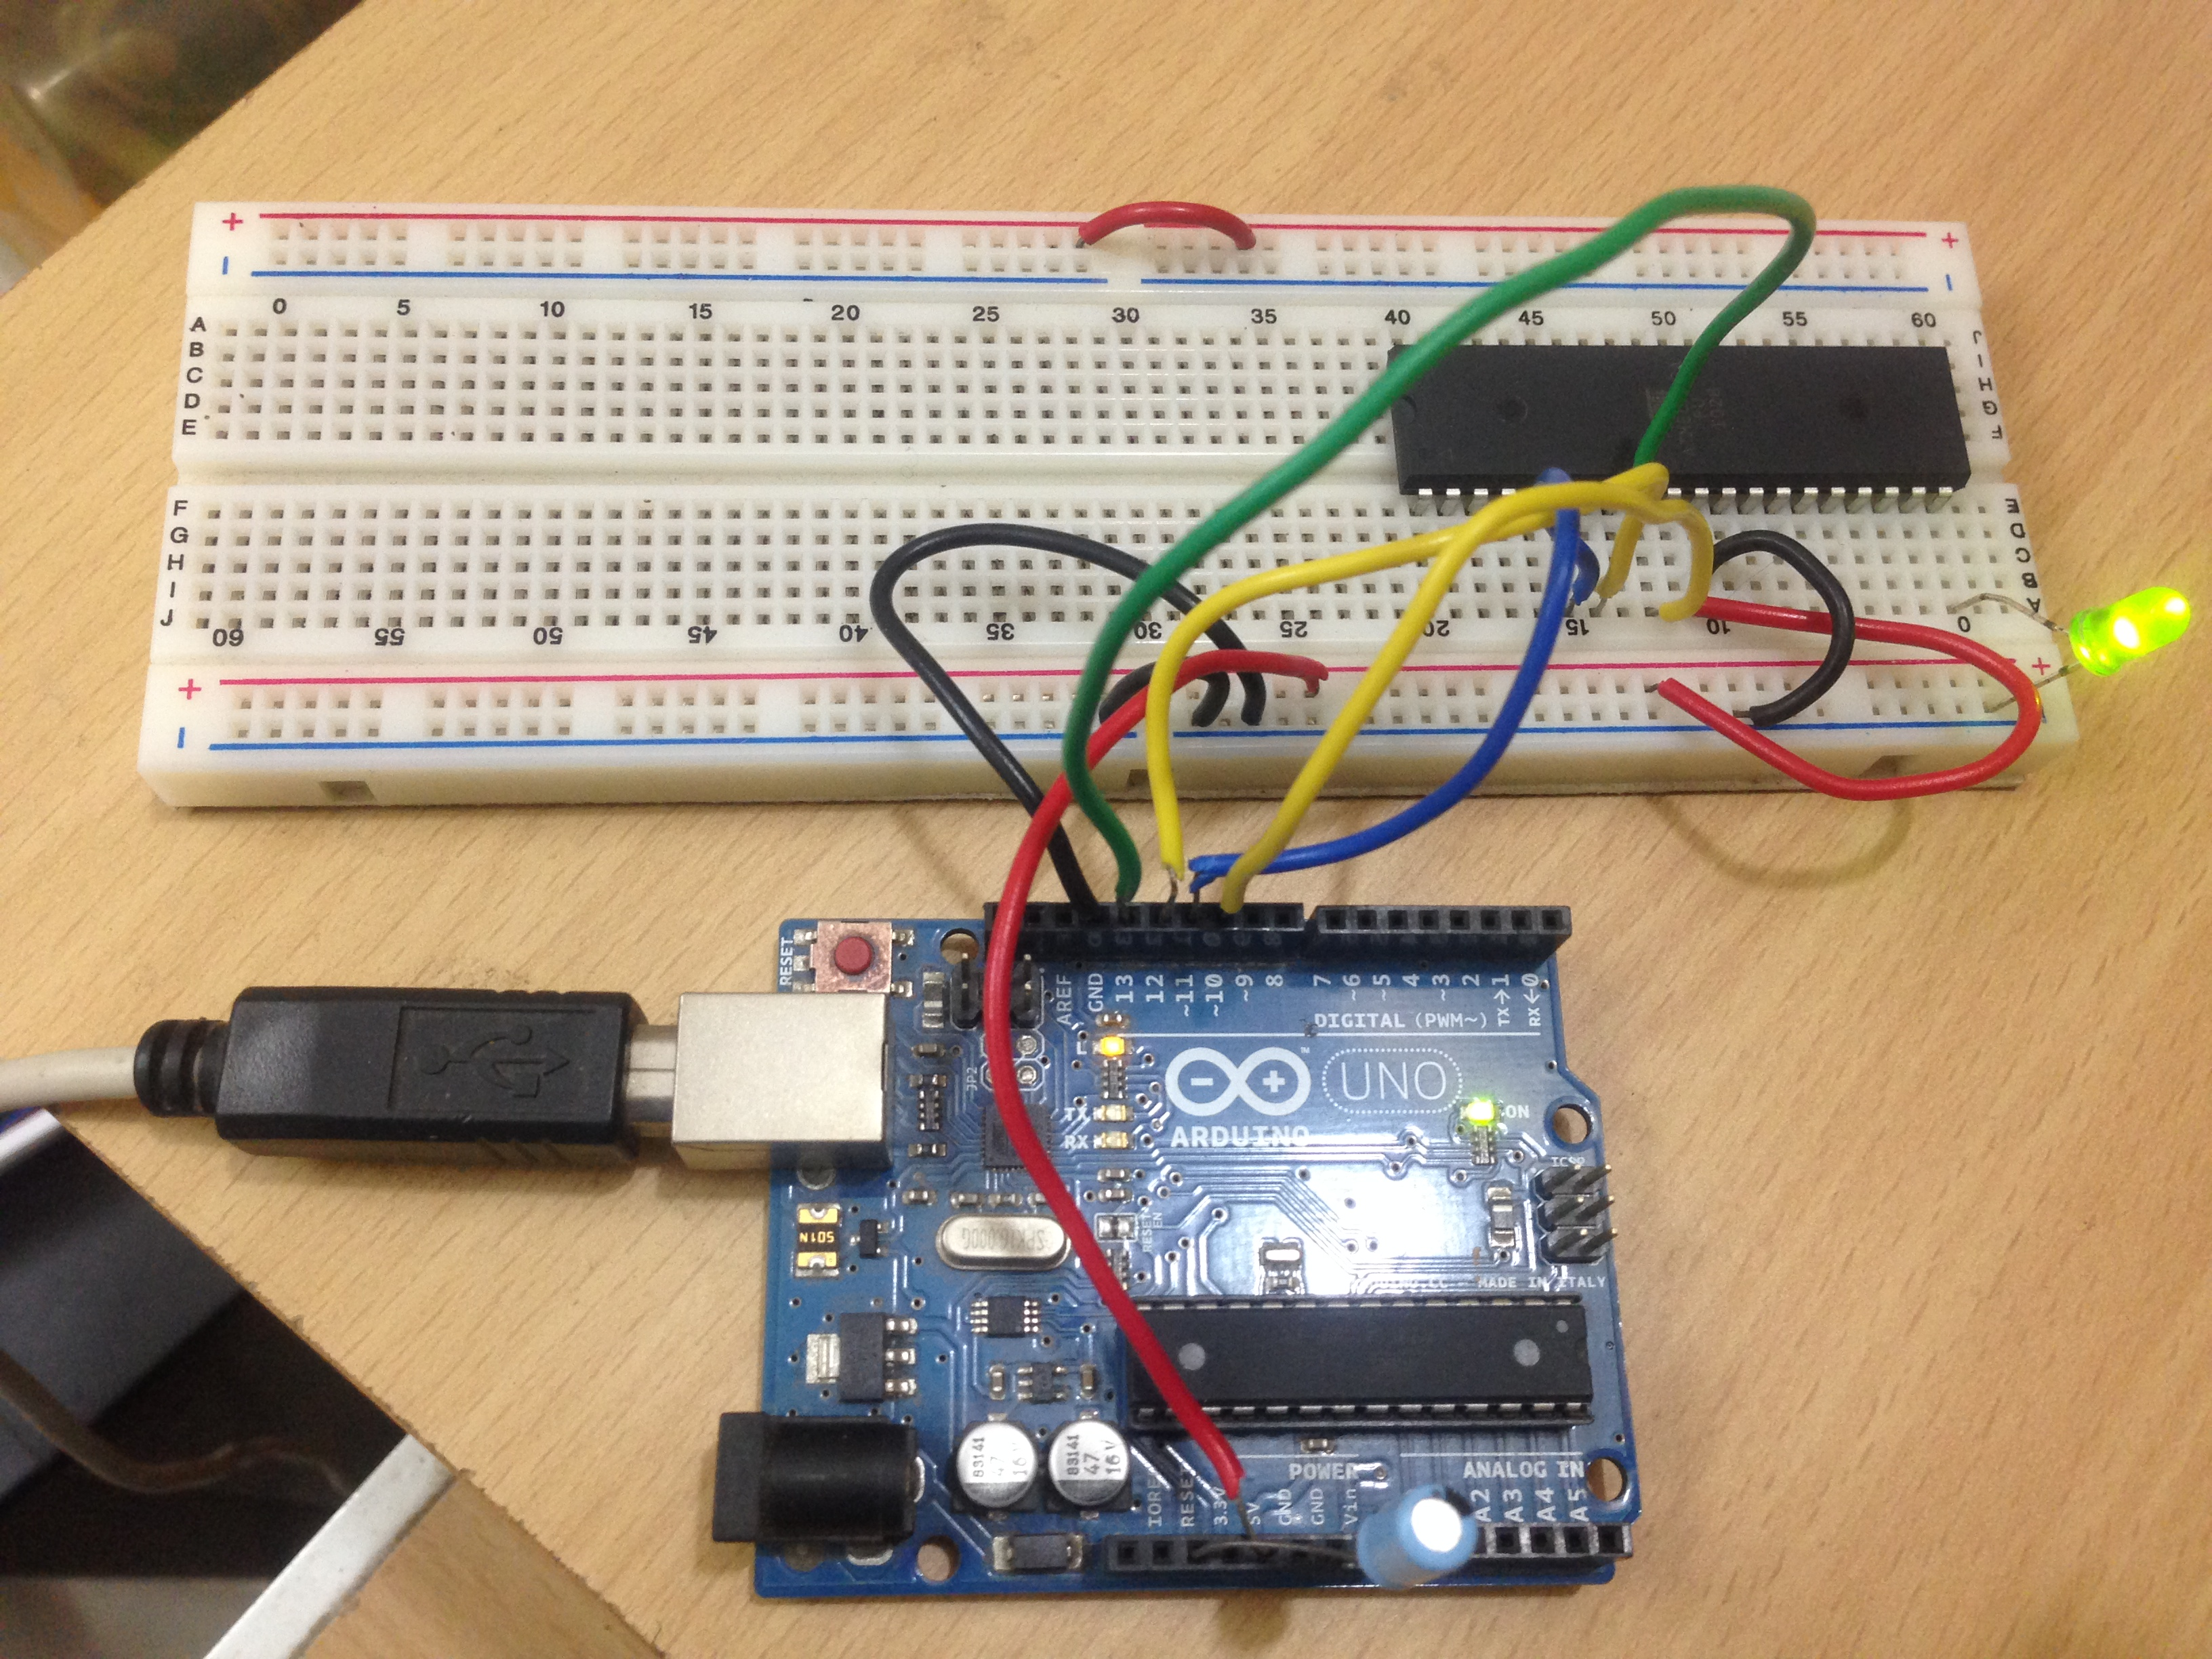 Use Arduino As An Isp Programmer To Program Non Avr Atmega8 Breadboard Circuit Part 1 Of 3 Power Supply Atmega 16 Using